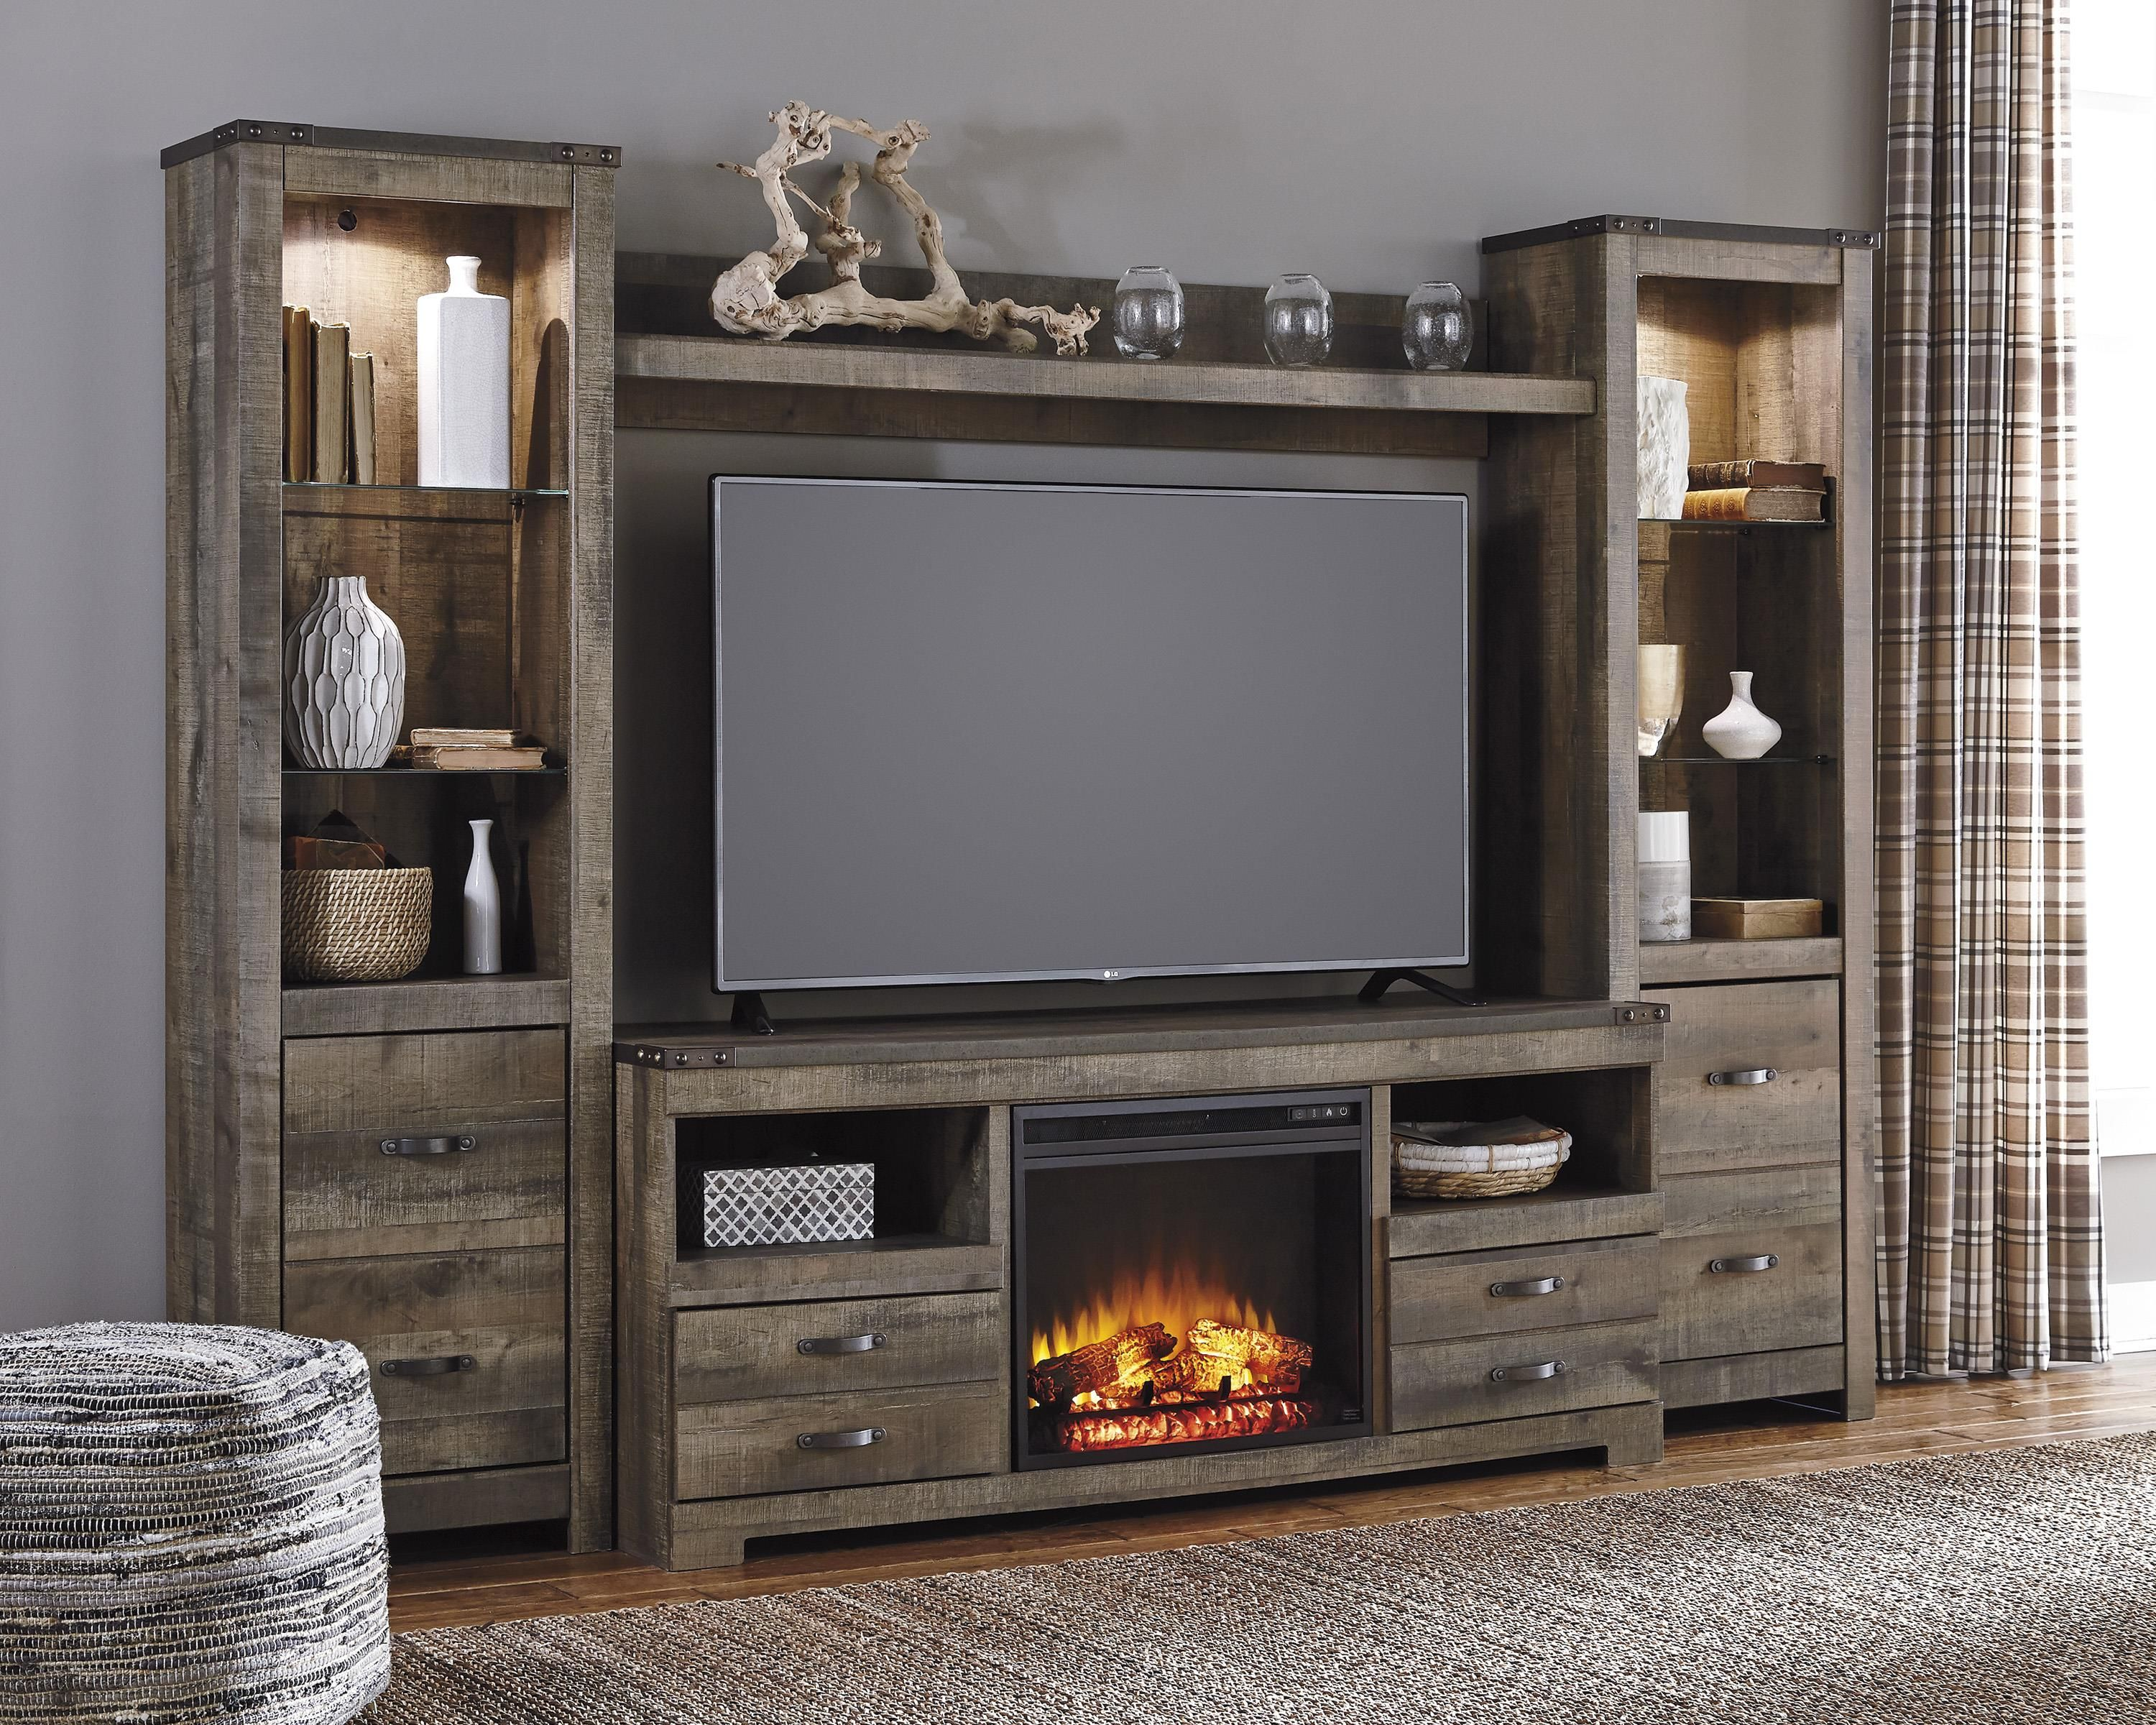 Trinell Rustic Large Tv Stand W Fireplace Insert 2 Tall Piers Bridge By Signature Design By Ashley Entertainment Wall Units Entertainment Center Entertainment Center Furniture